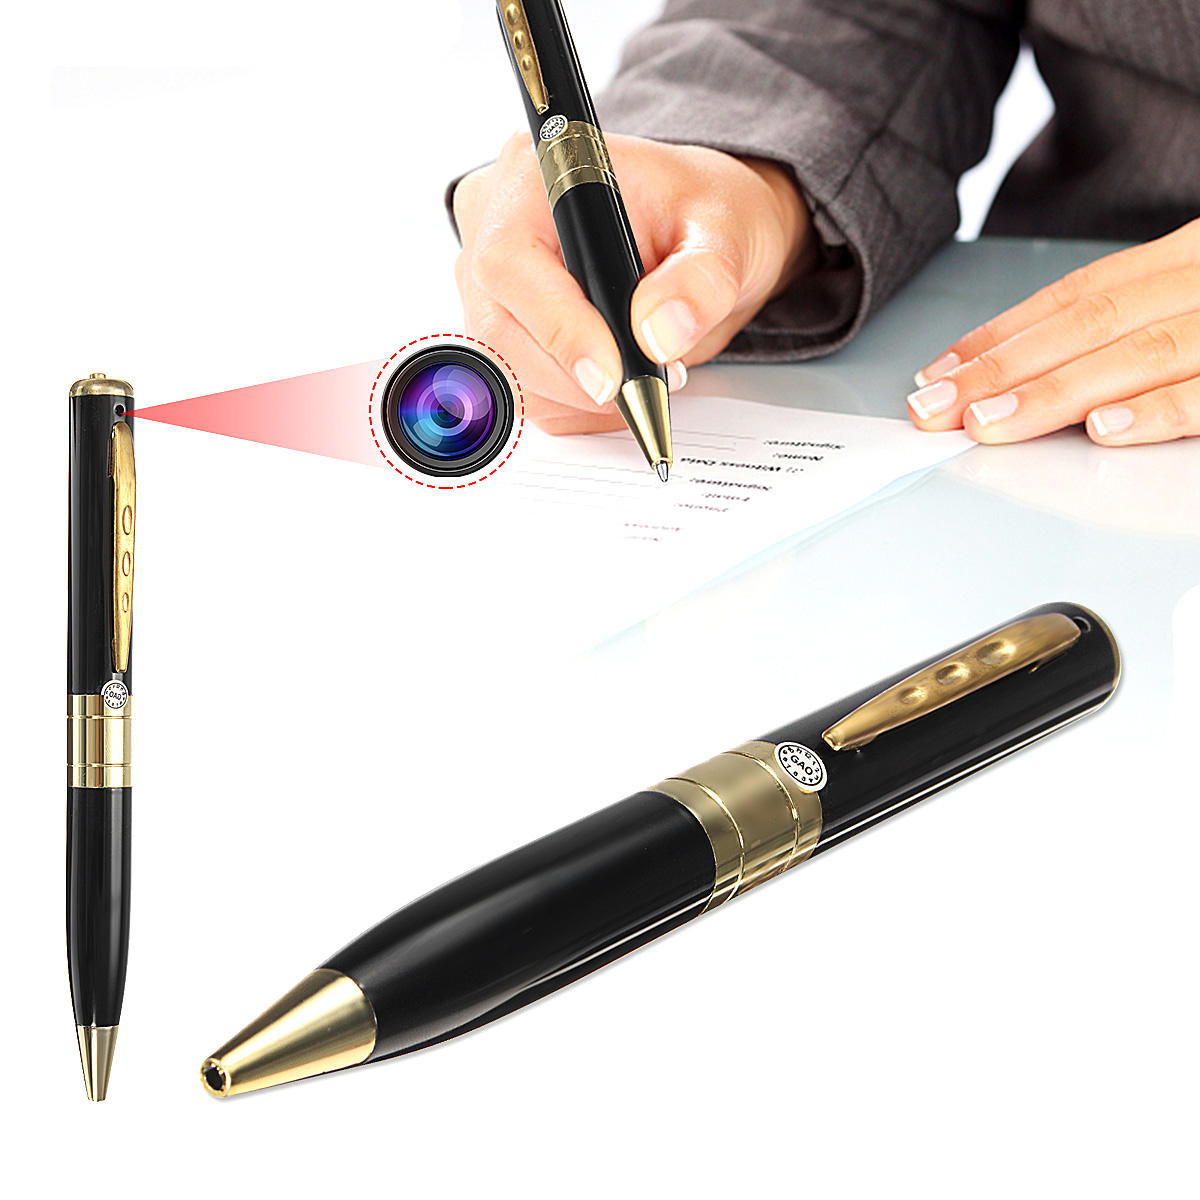 Pen-Camera-with-Video-Recoding